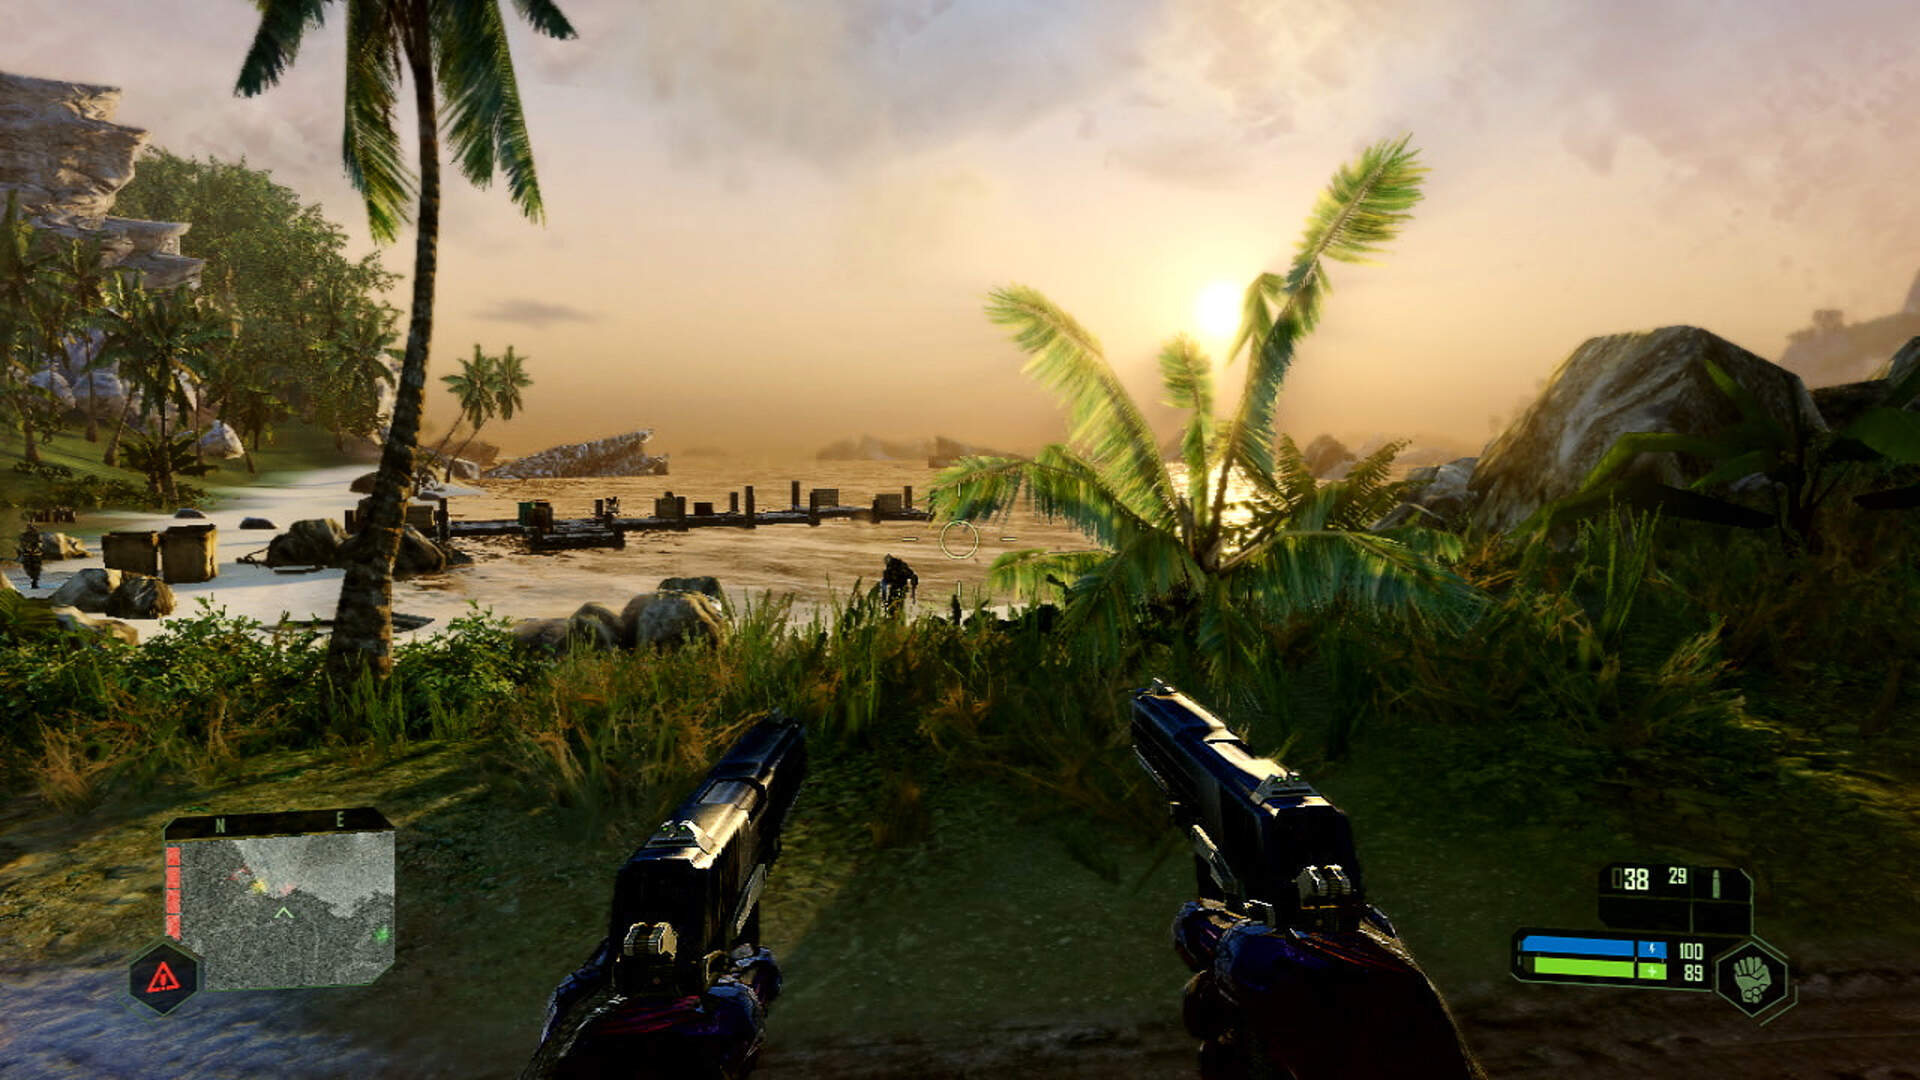 Crysis Remastered Will Arrive on Nintendo Switch Before Any Other Platform